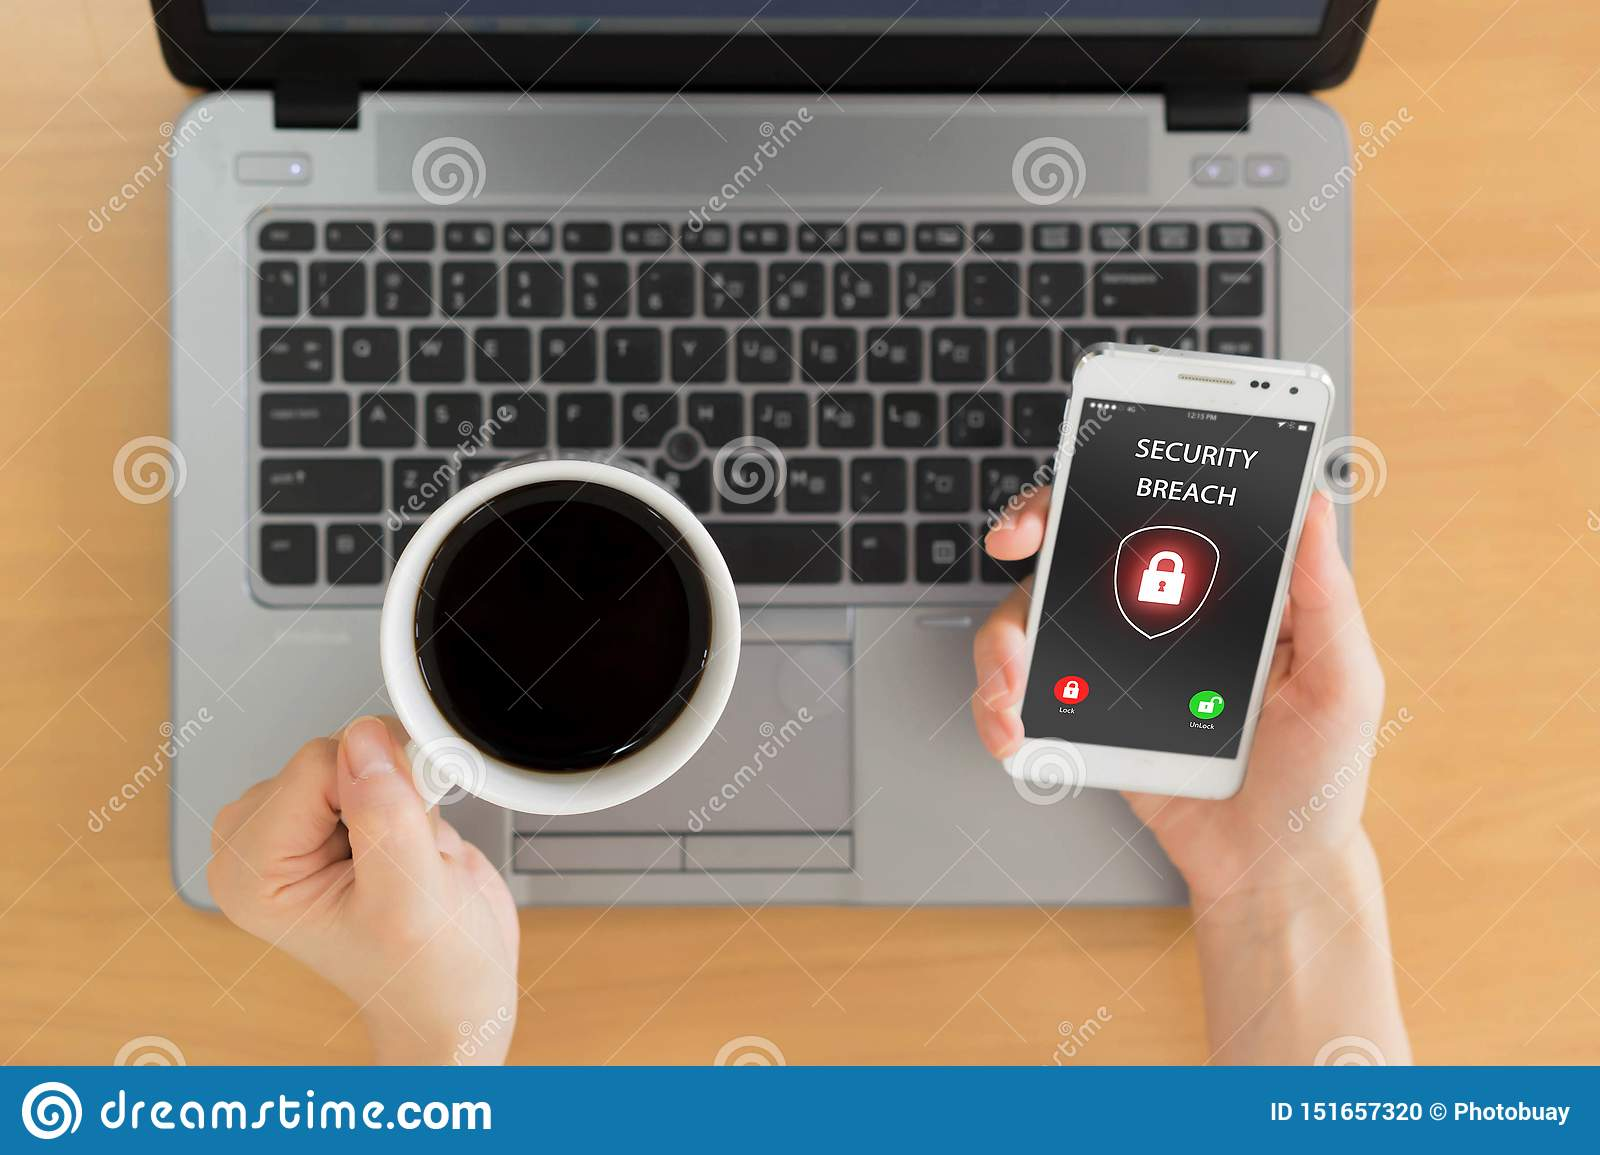 Security breach, smartphone screen, infected by internet